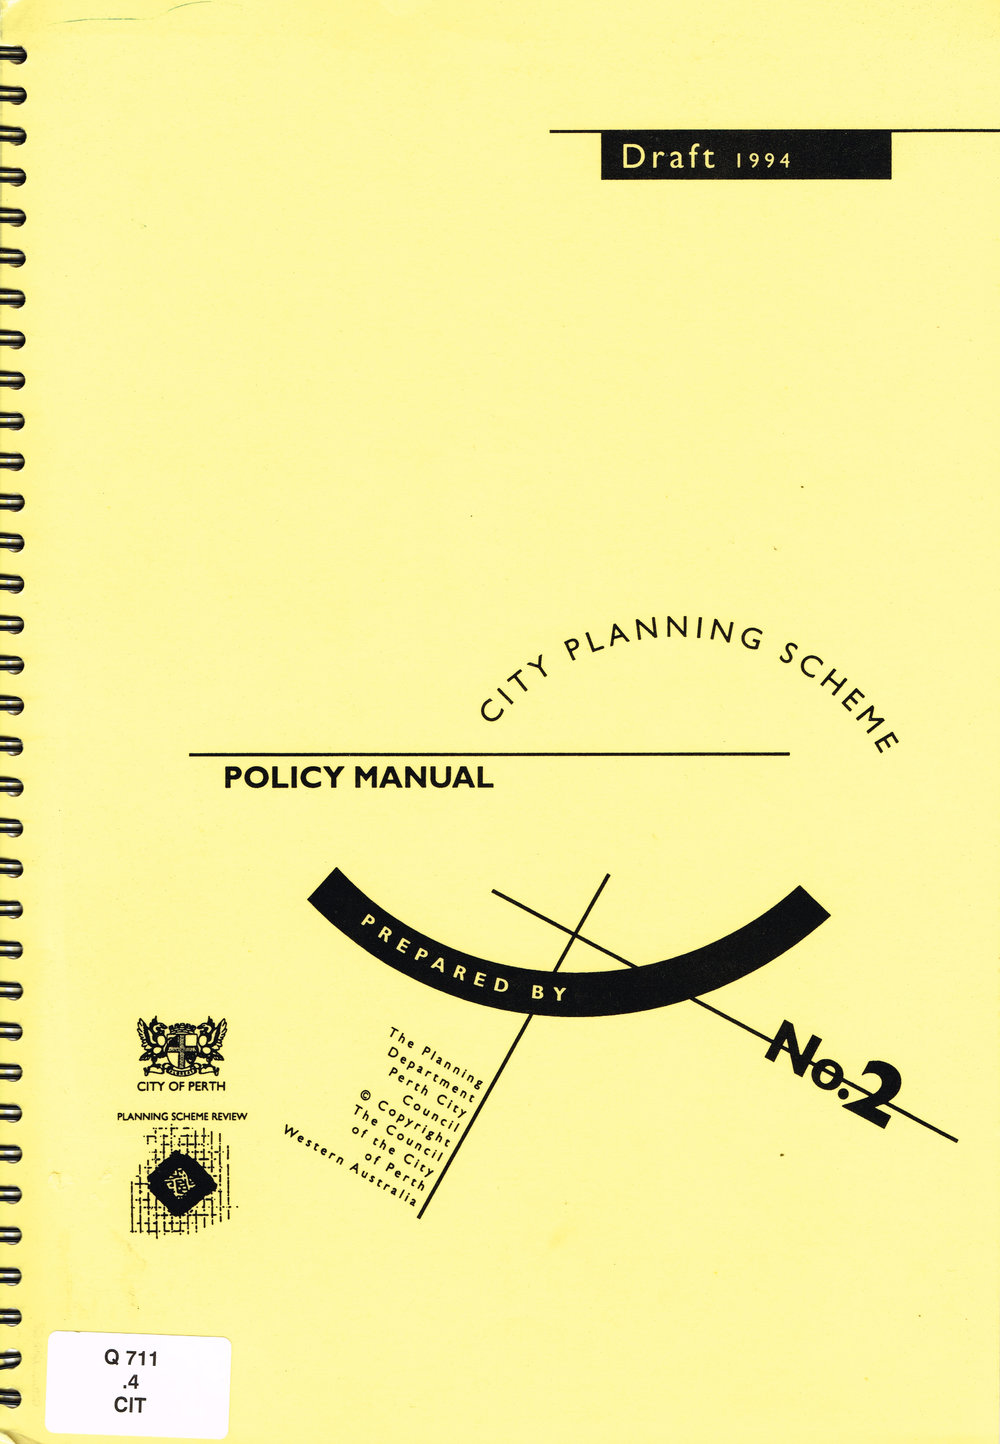 City Planning Scheme Policy Manual : Draft 1994 No. 2  City of Perth : The Planning Department Perth City Council